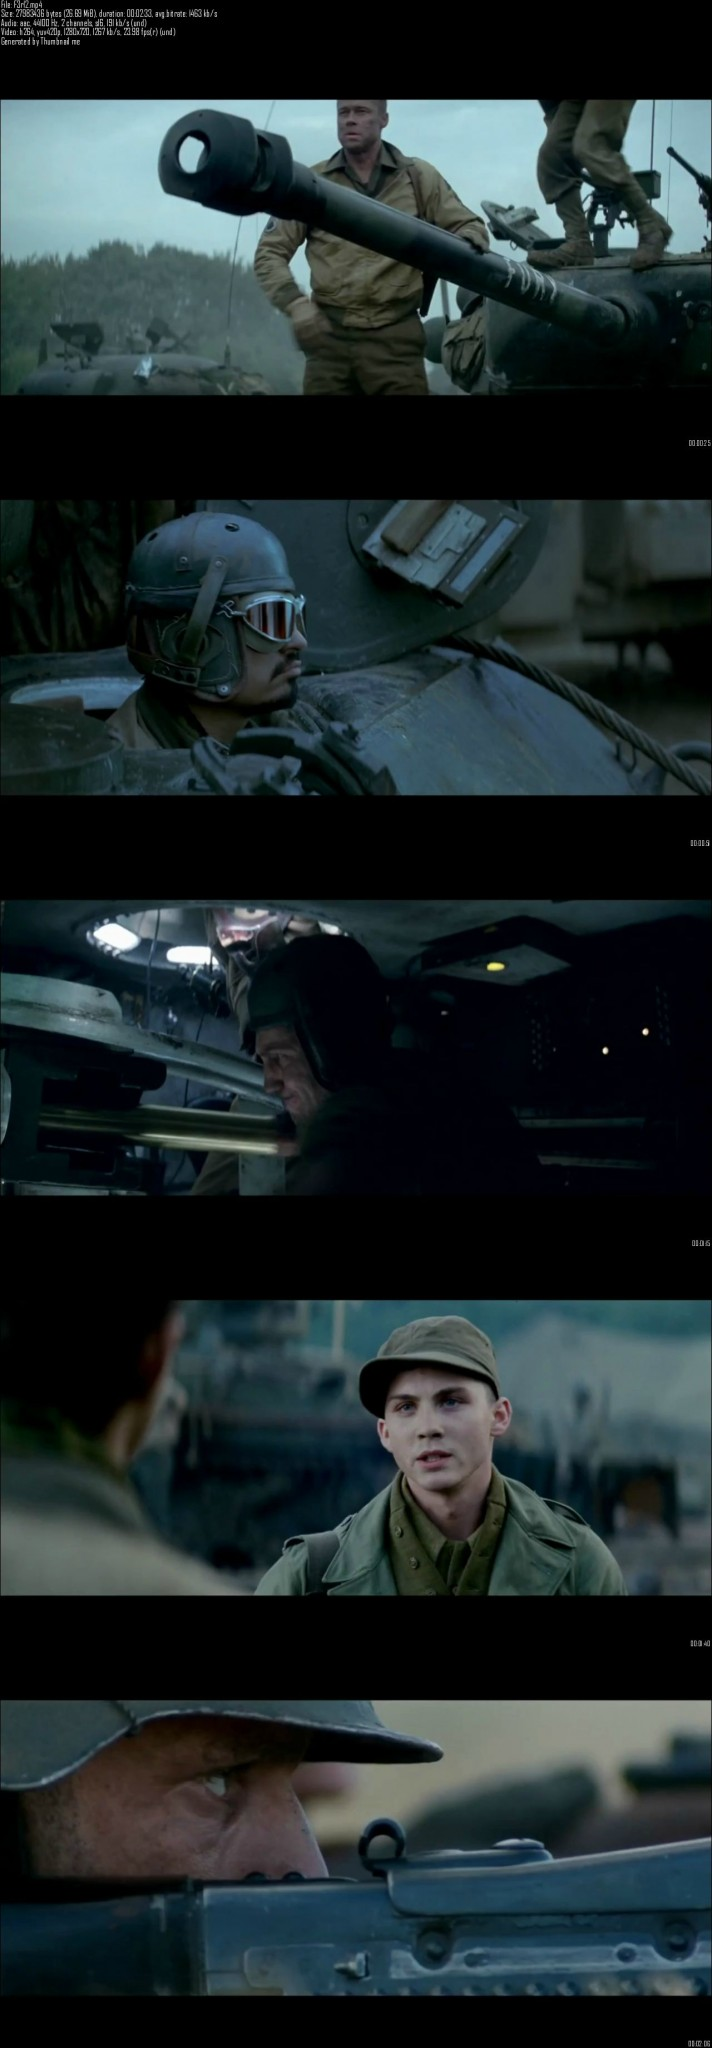 Fury (2014) English Movie Official Trailer